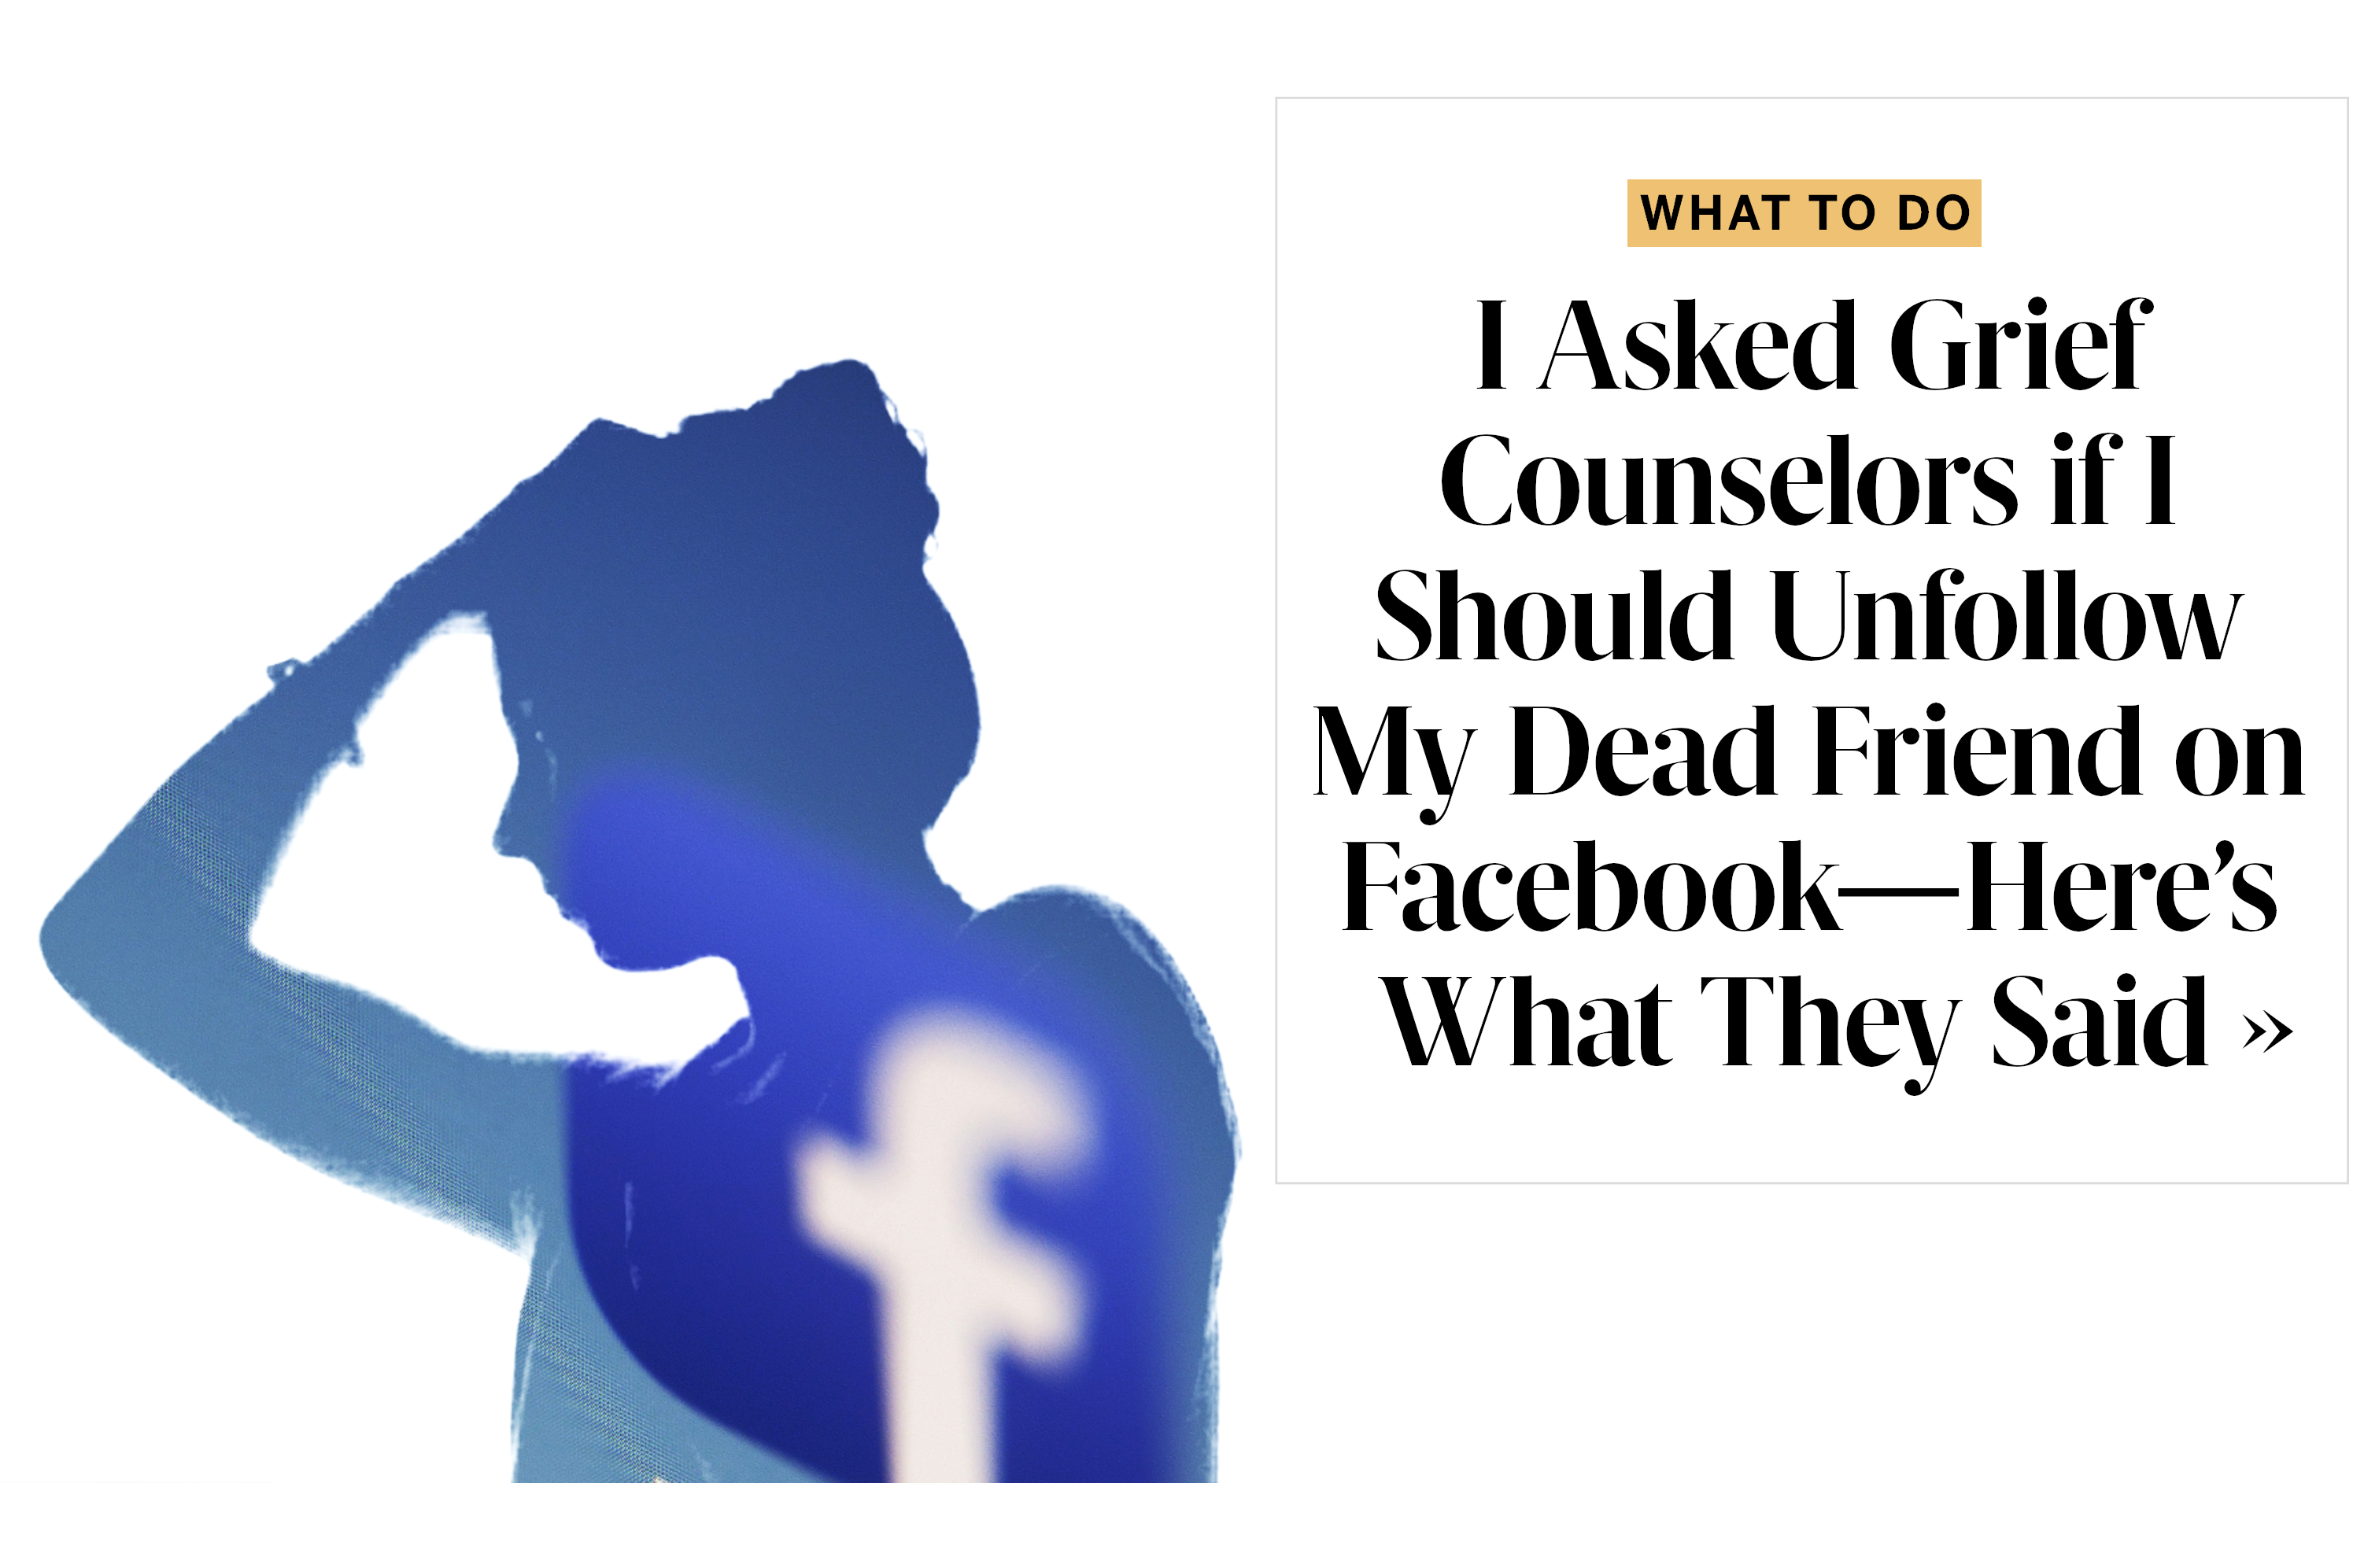 I Asked Grief Counselors if I Should Unfollow My Dead Friend on Facebook—Here's What They Said